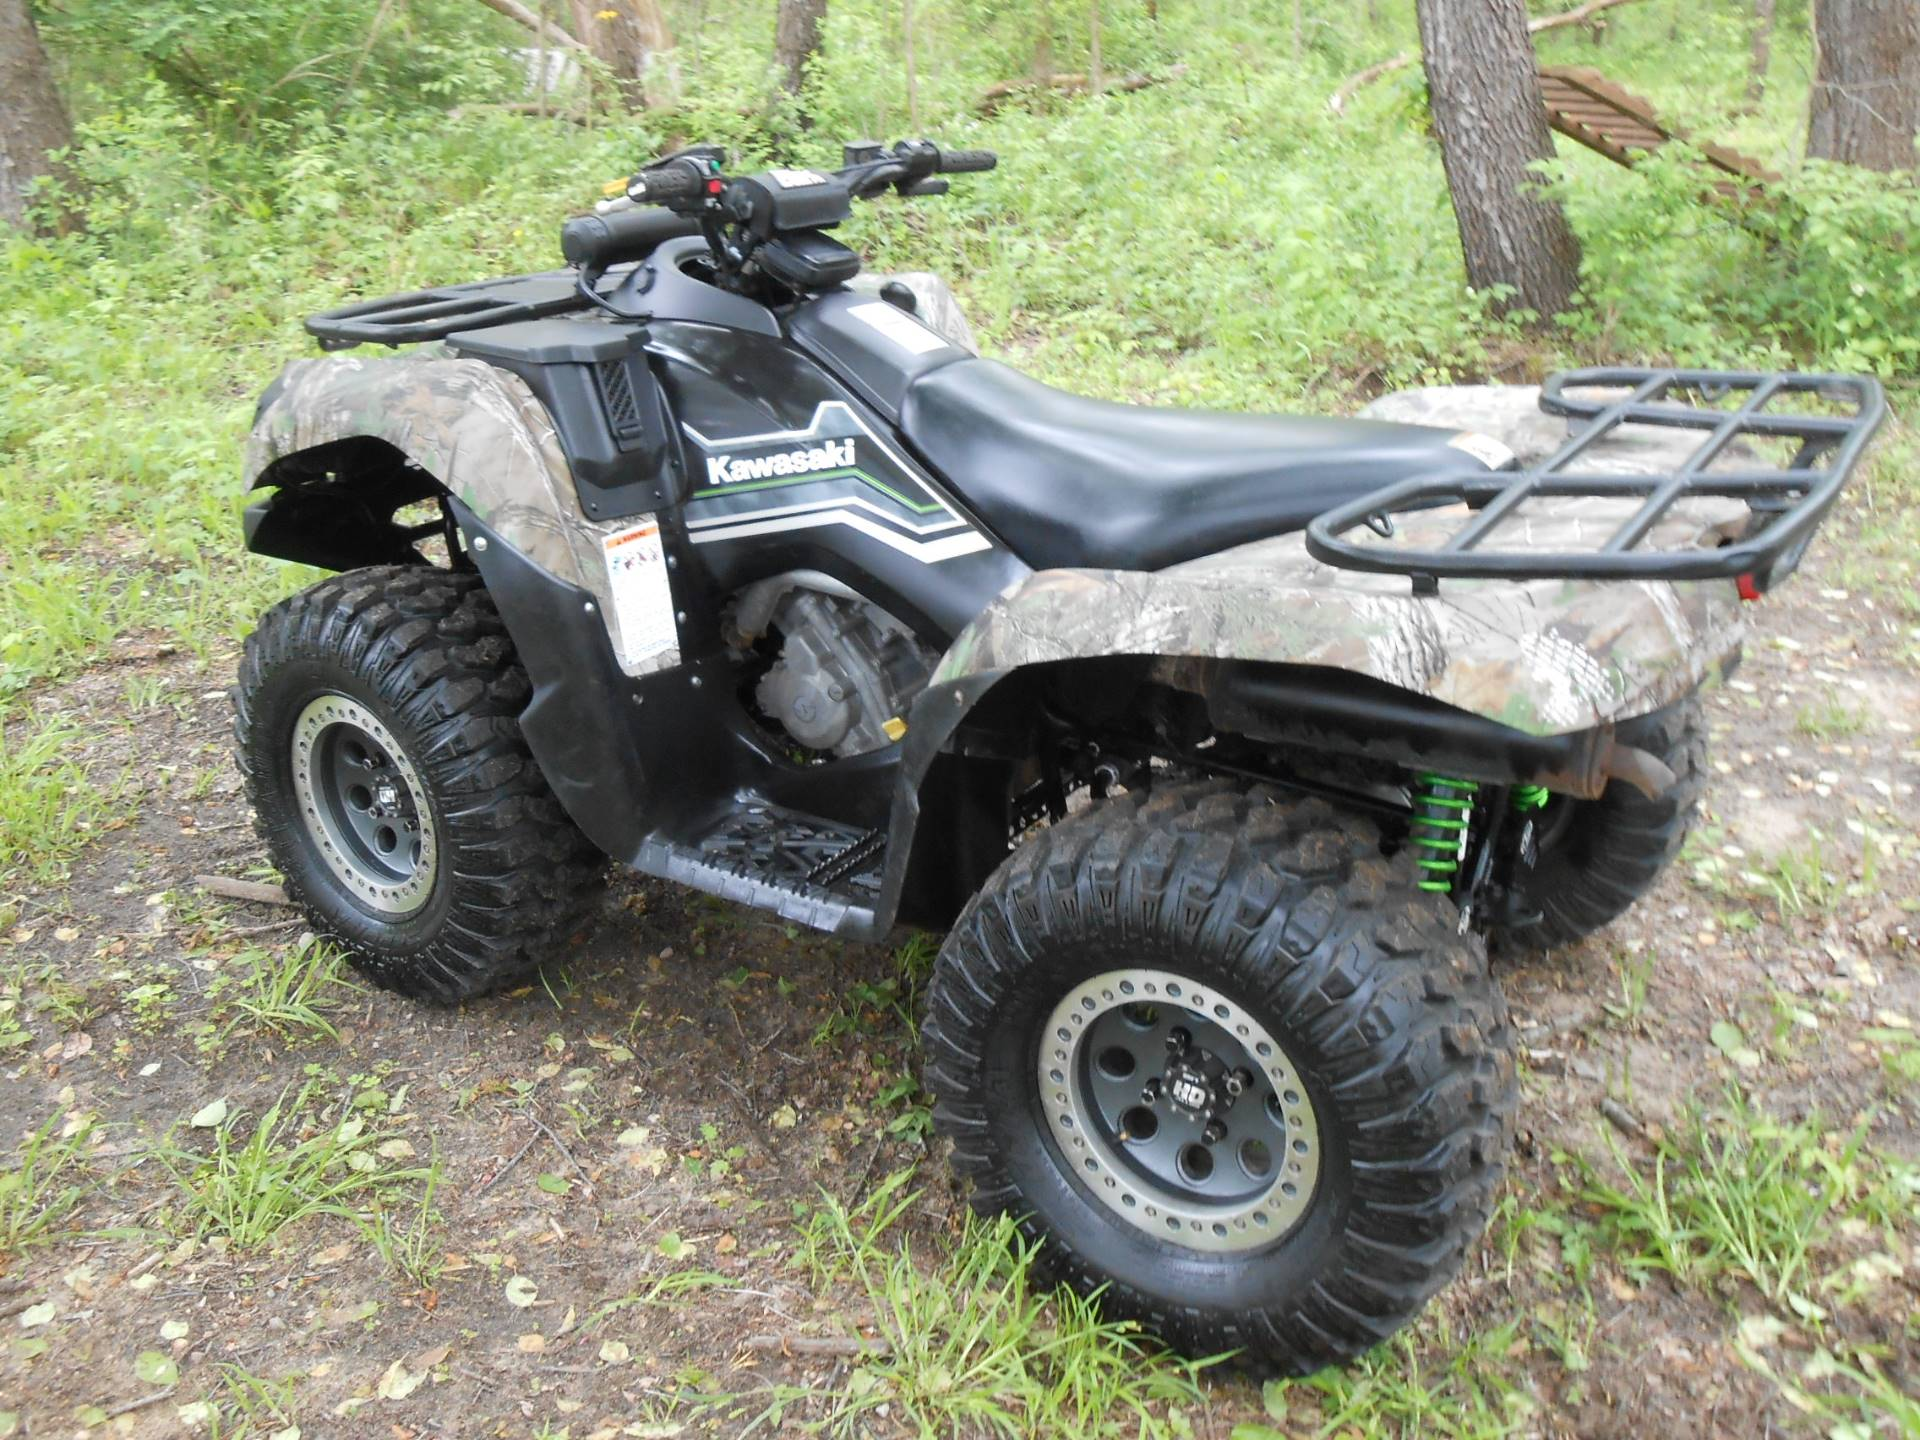 2016 Kawasaki Brute Force 750 4x4i EPS in Howell, Michigan - Photo 5